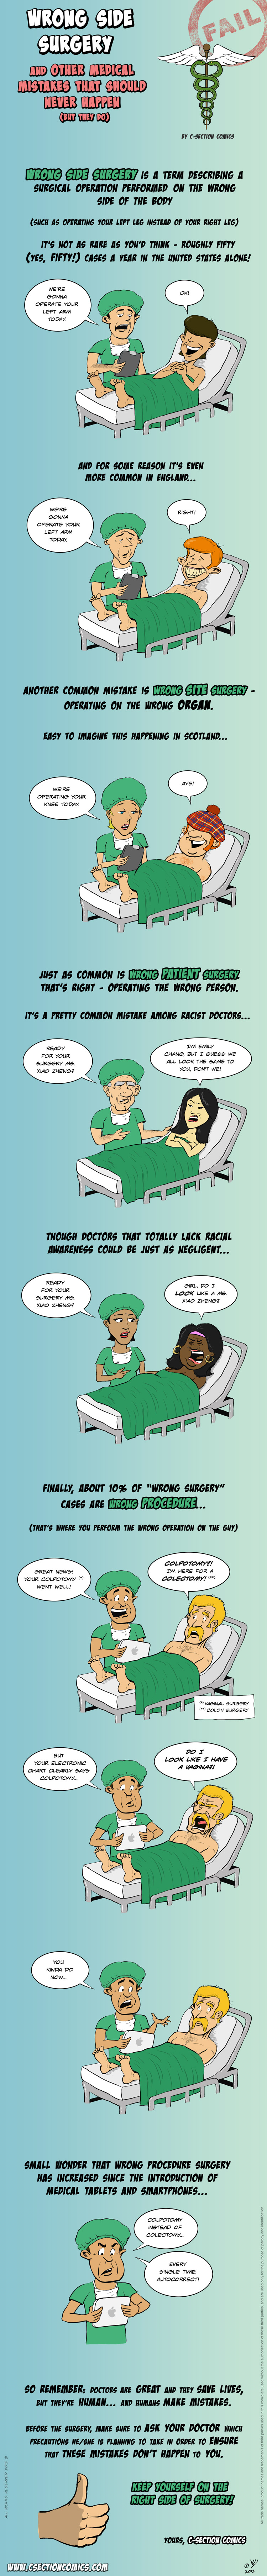 comic-2012-12-02-wrong-side-surgery-and-other-medical-mistakes.jpg